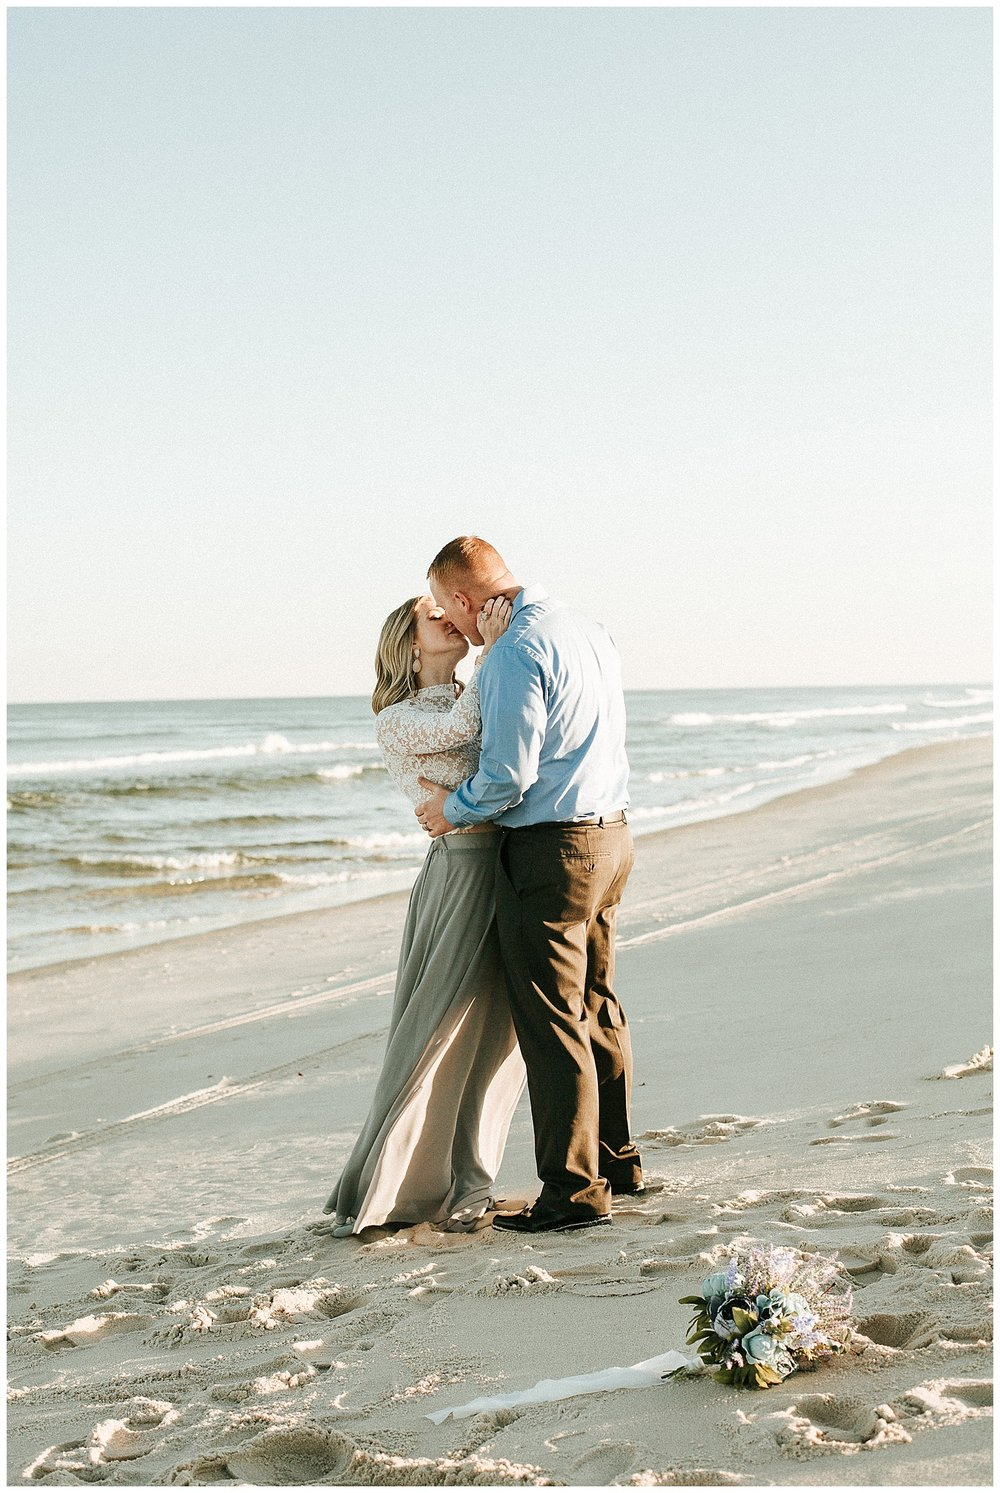 New Jersey Elopement | Island Beach State Park | Seaside Park, NJ | www.redoakweddings.com